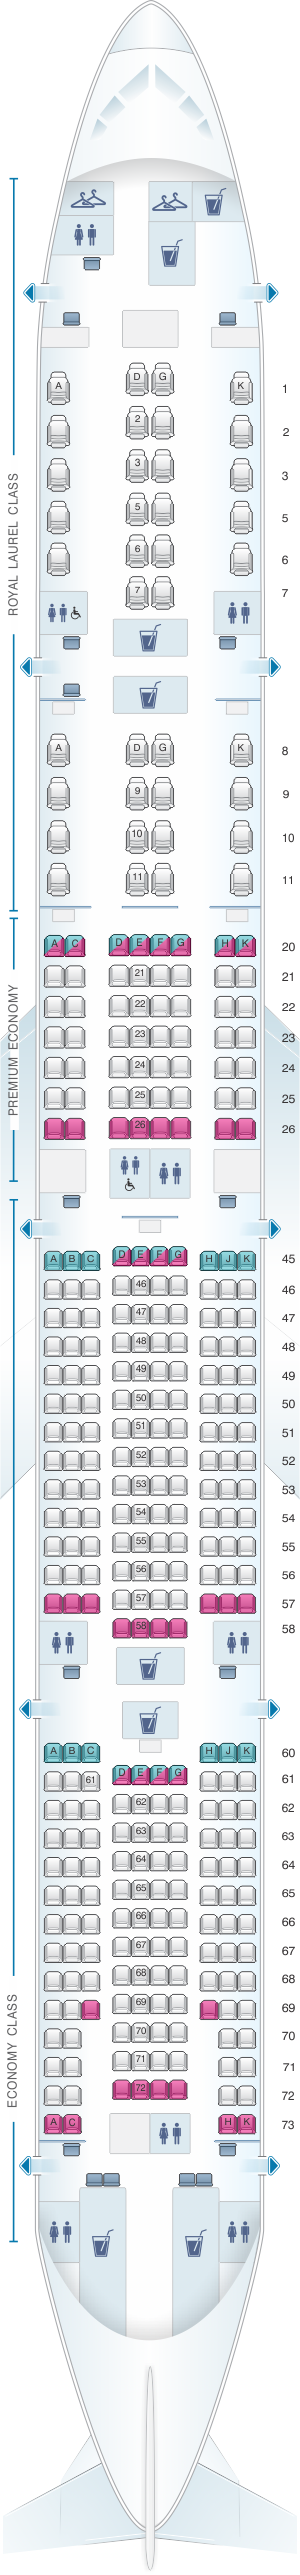 Seat map for EVA Air Boeing B777 300ER 353PAX